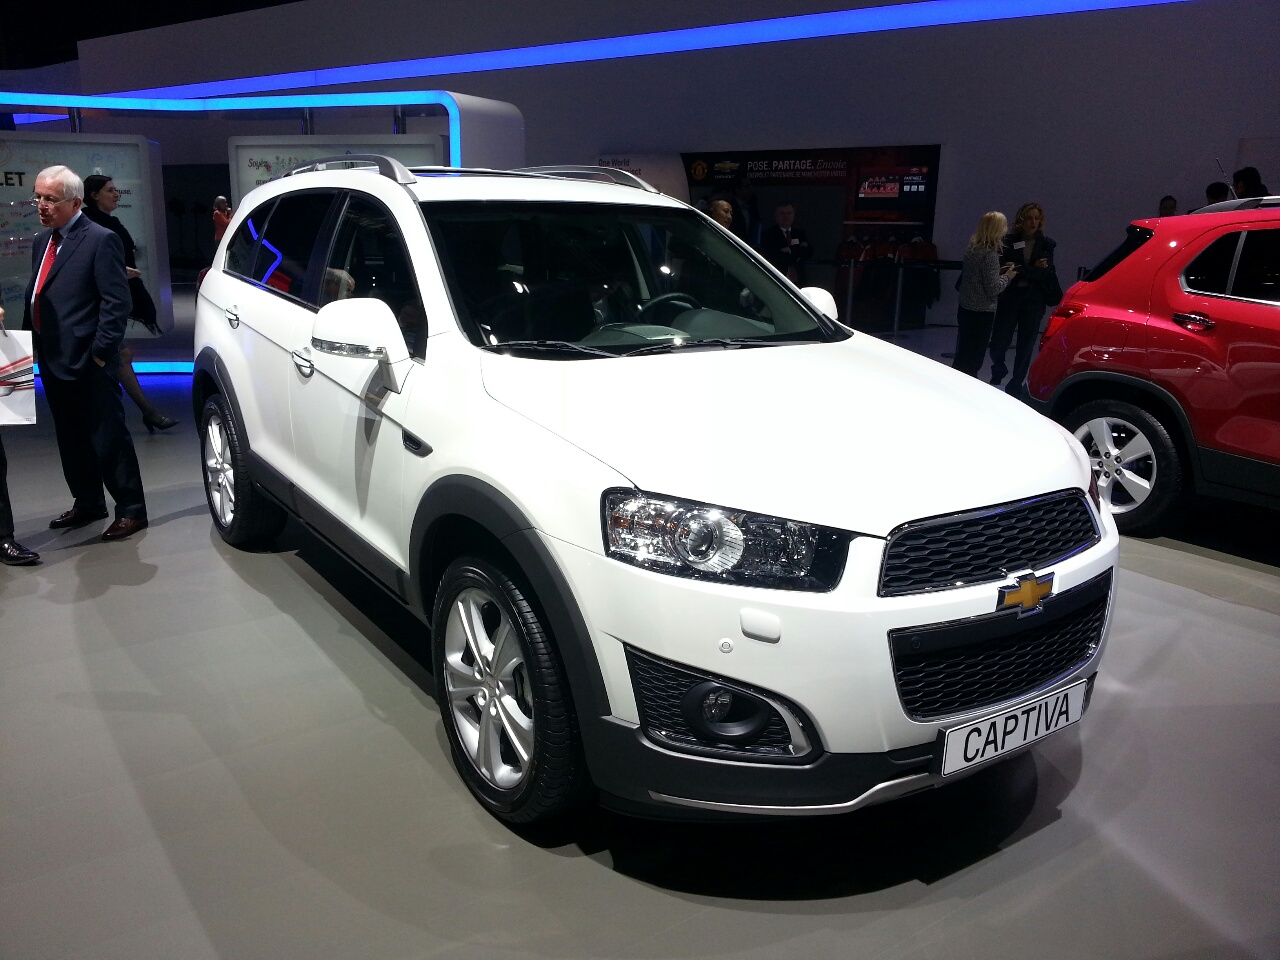 2013 chevrolet captiva pictures information and specs auto. Black Bedroom Furniture Sets. Home Design Ideas